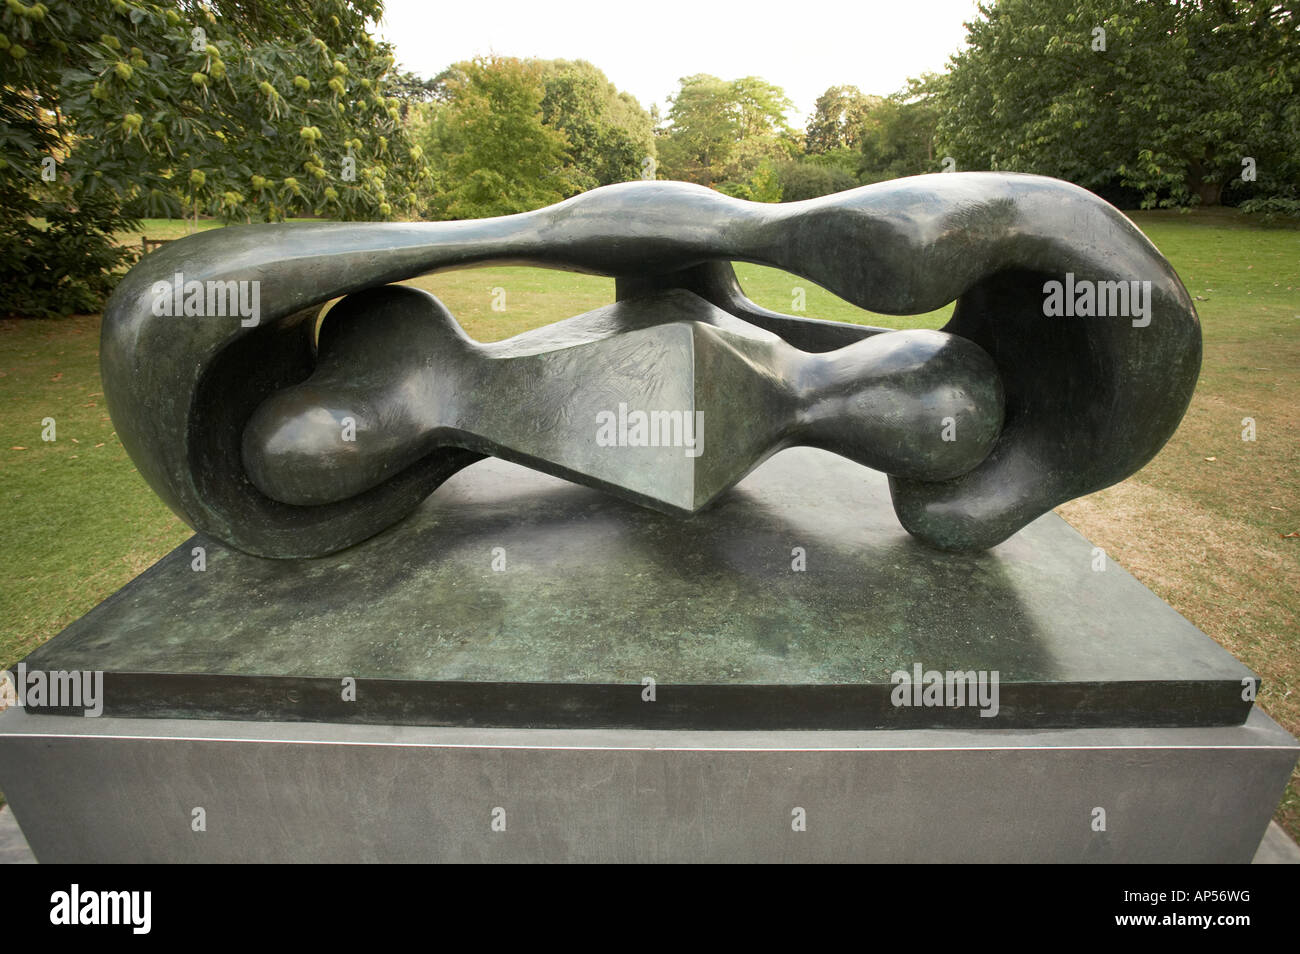 Henry Moore sculpture Reclining Connected Forms 1969 - Stock Image